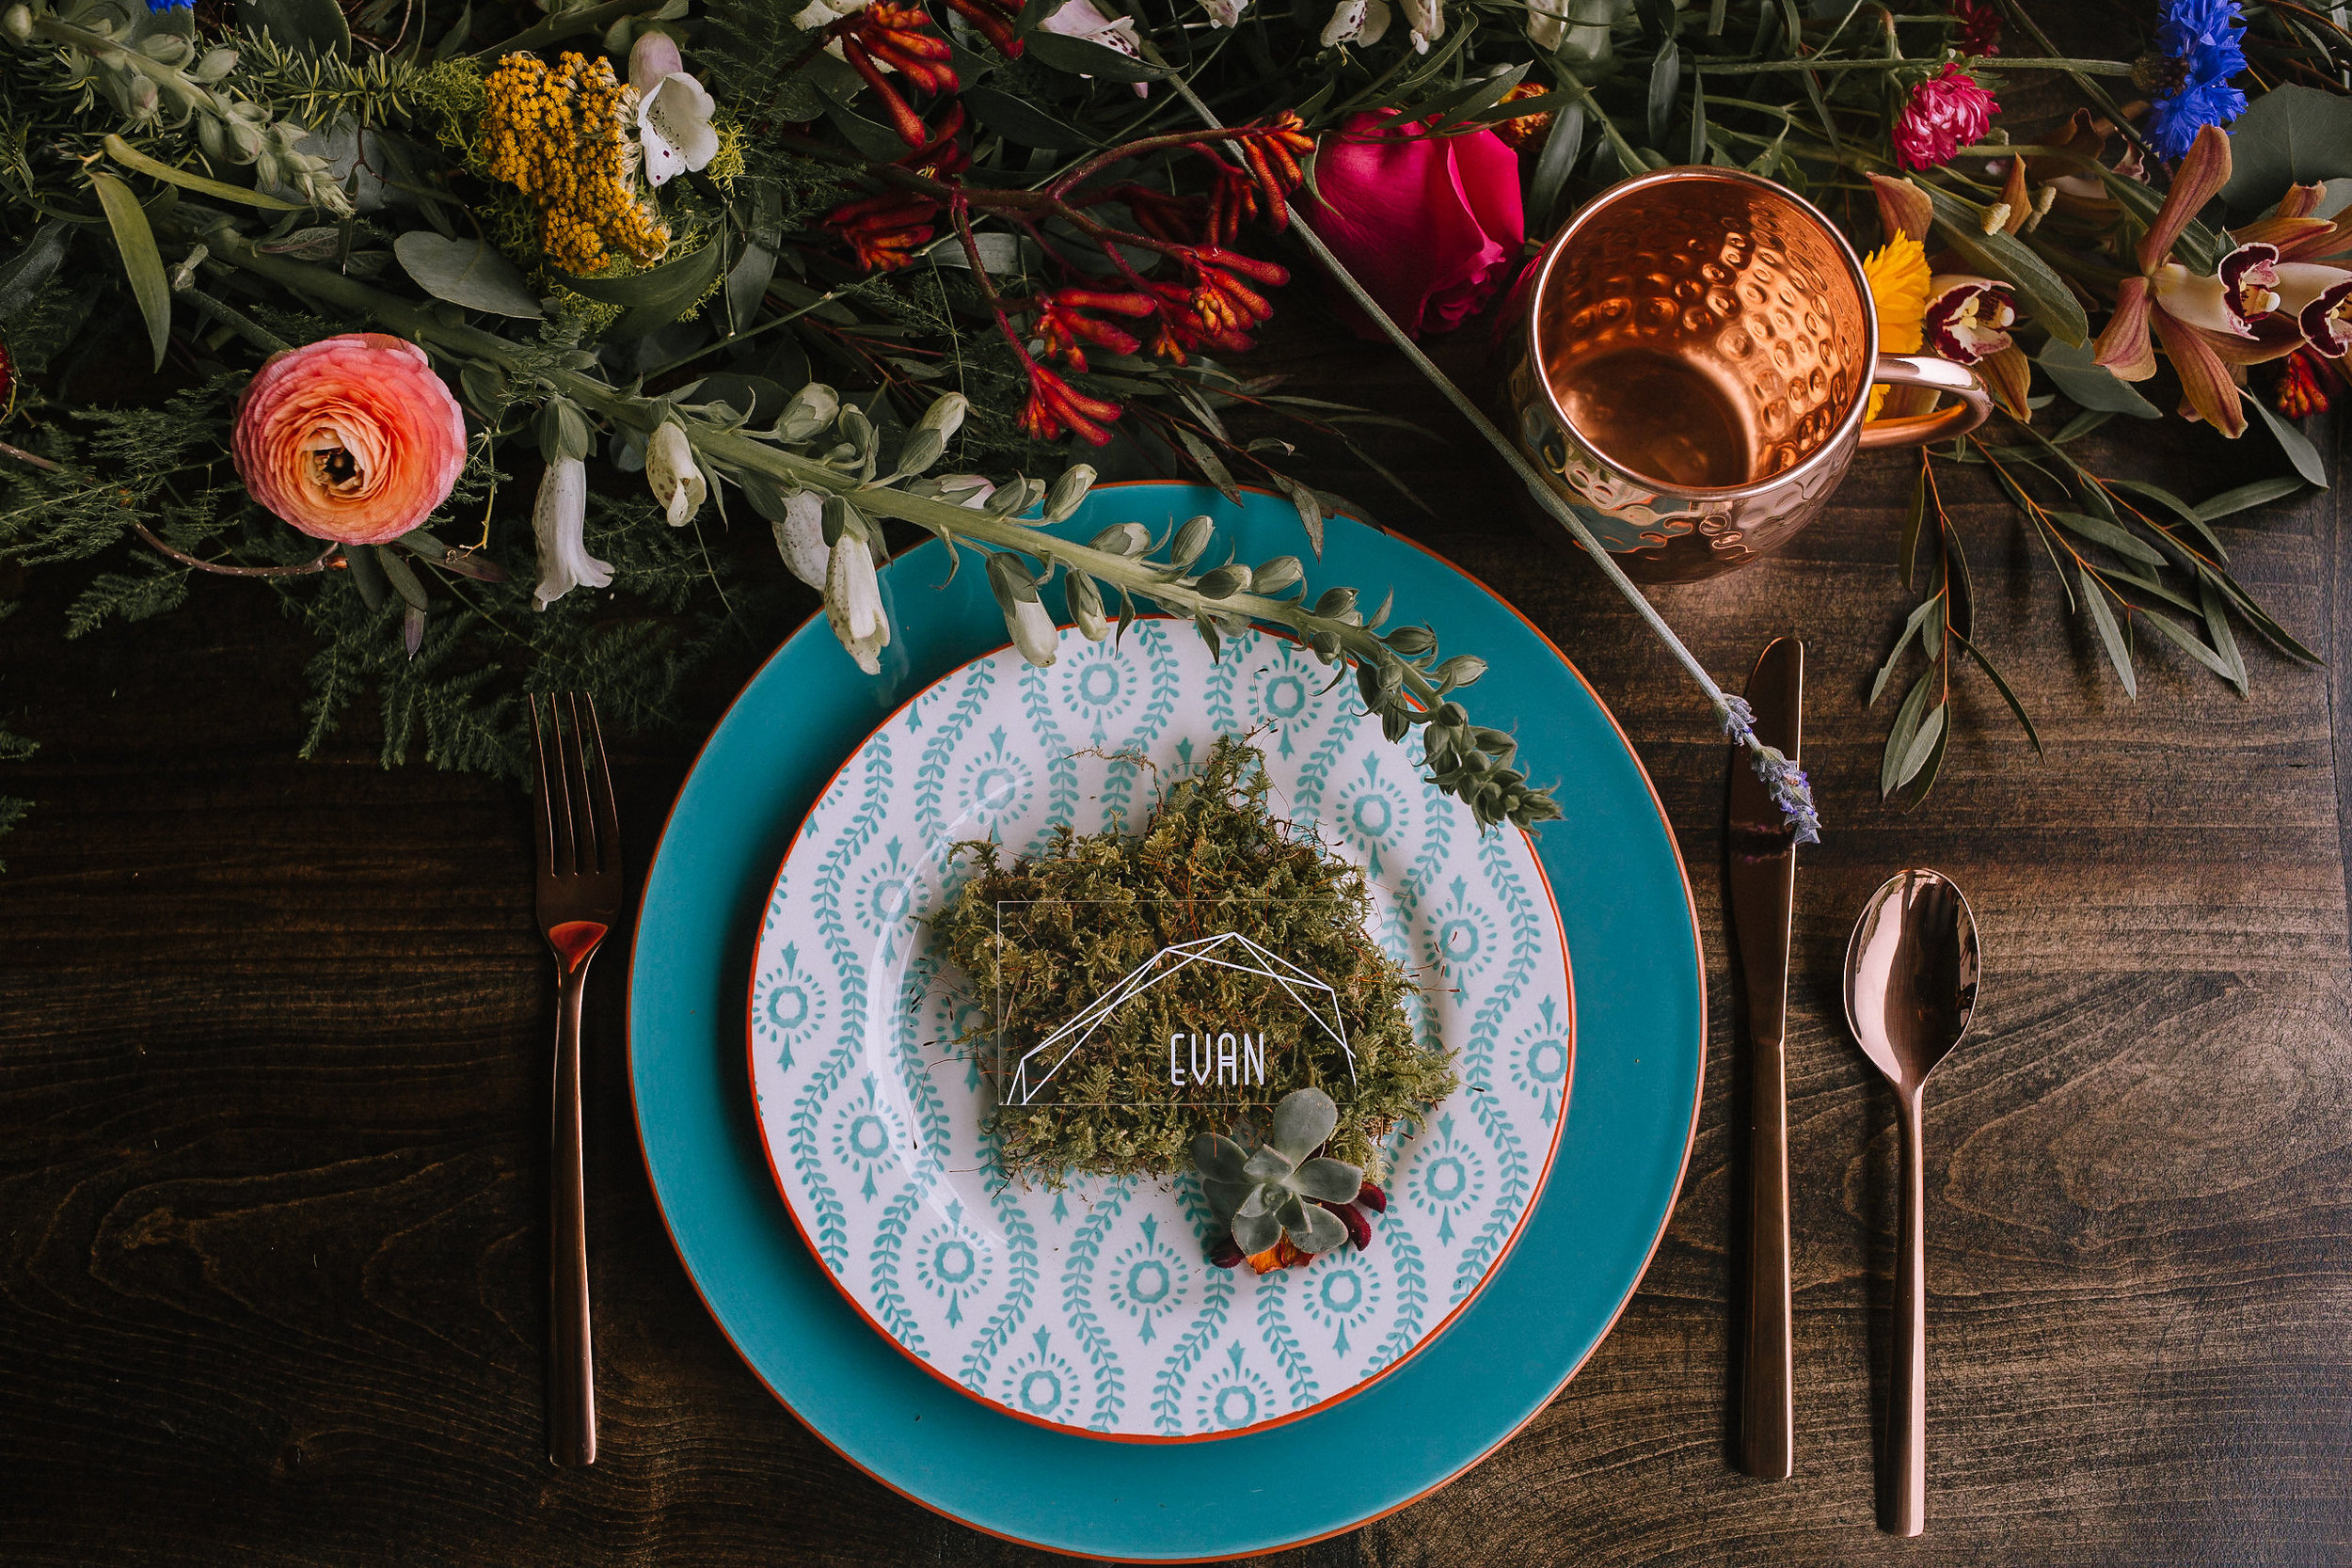 Place setting featuring dishes from Target Style, florals from Community Flower Shop and a farm table from The Wooden Whale.